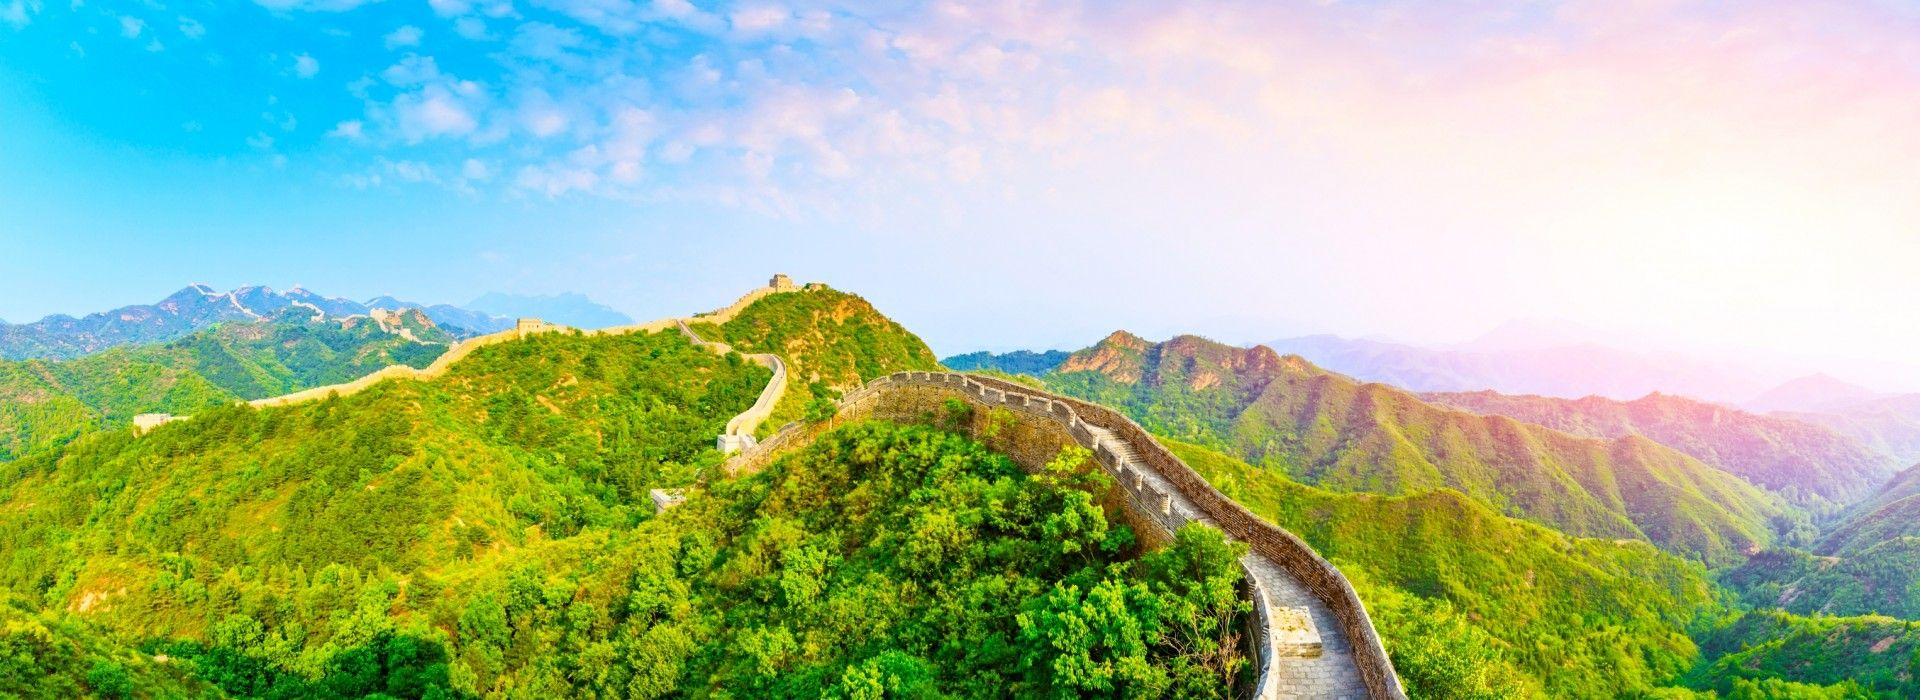 City sightseeing Tours in Great Wall of China